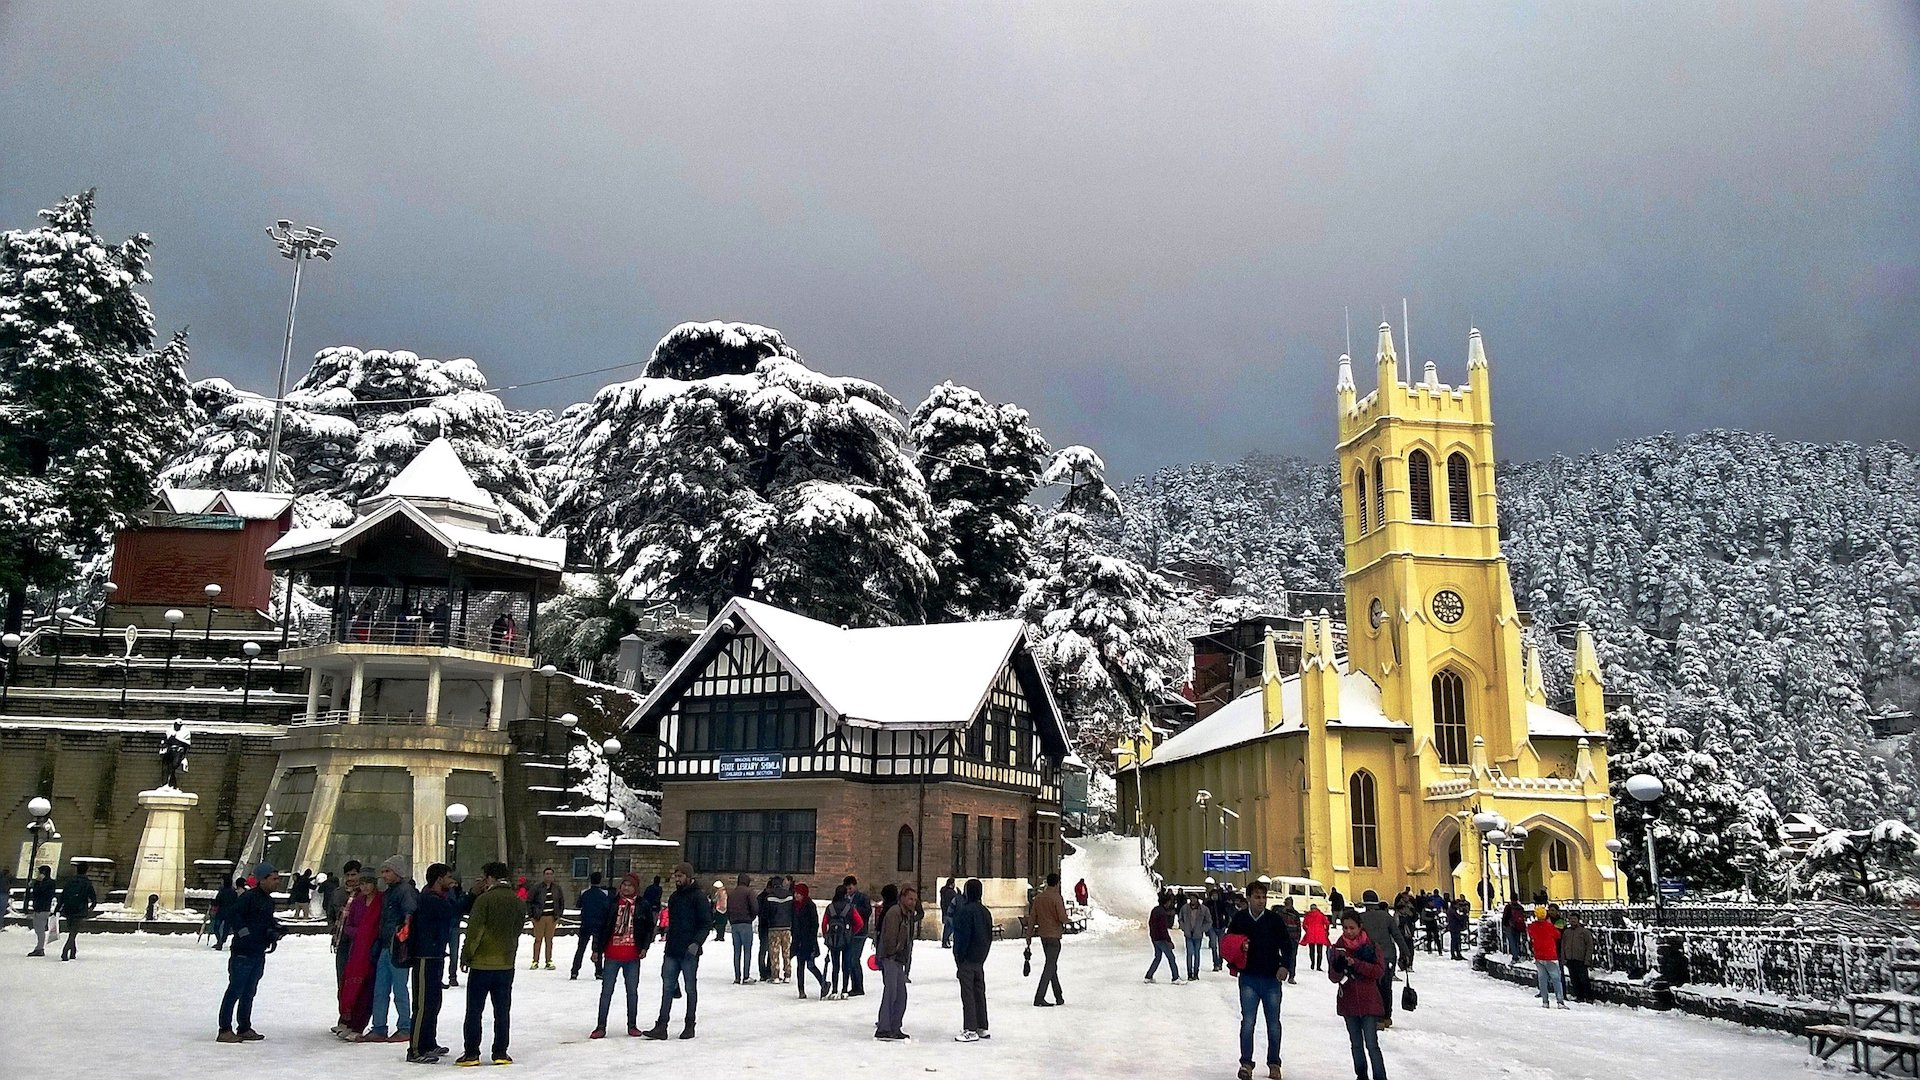 christ church shimla - place to visit for summer vacations in india with family